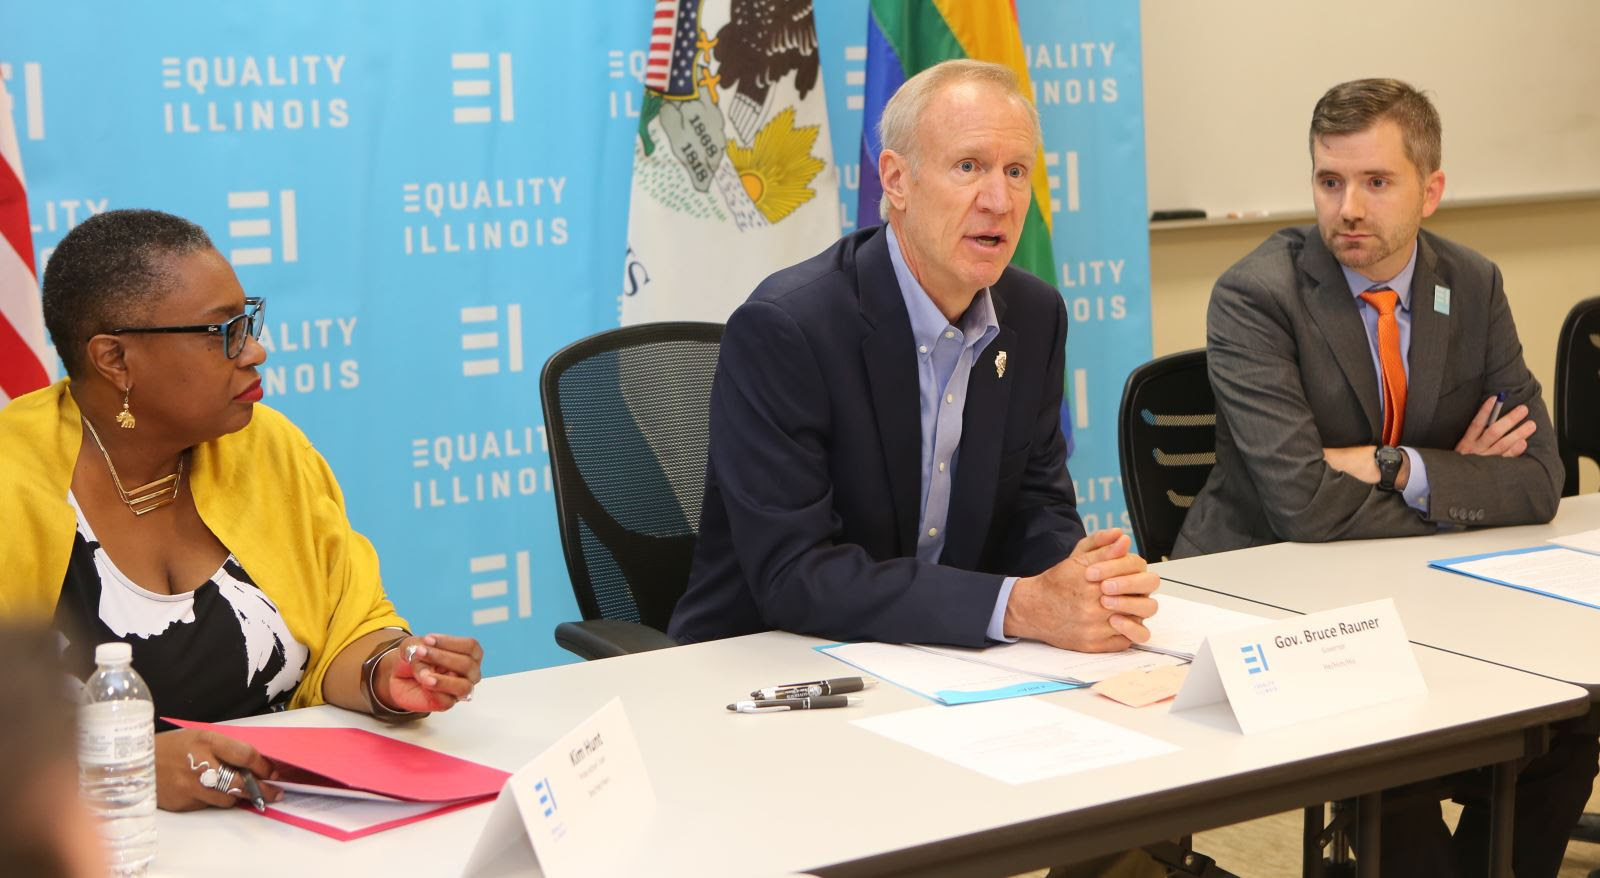 New Trier Republicans stunned incumbent GOP Gov. Bruce Rauner by withholding their endorsement.